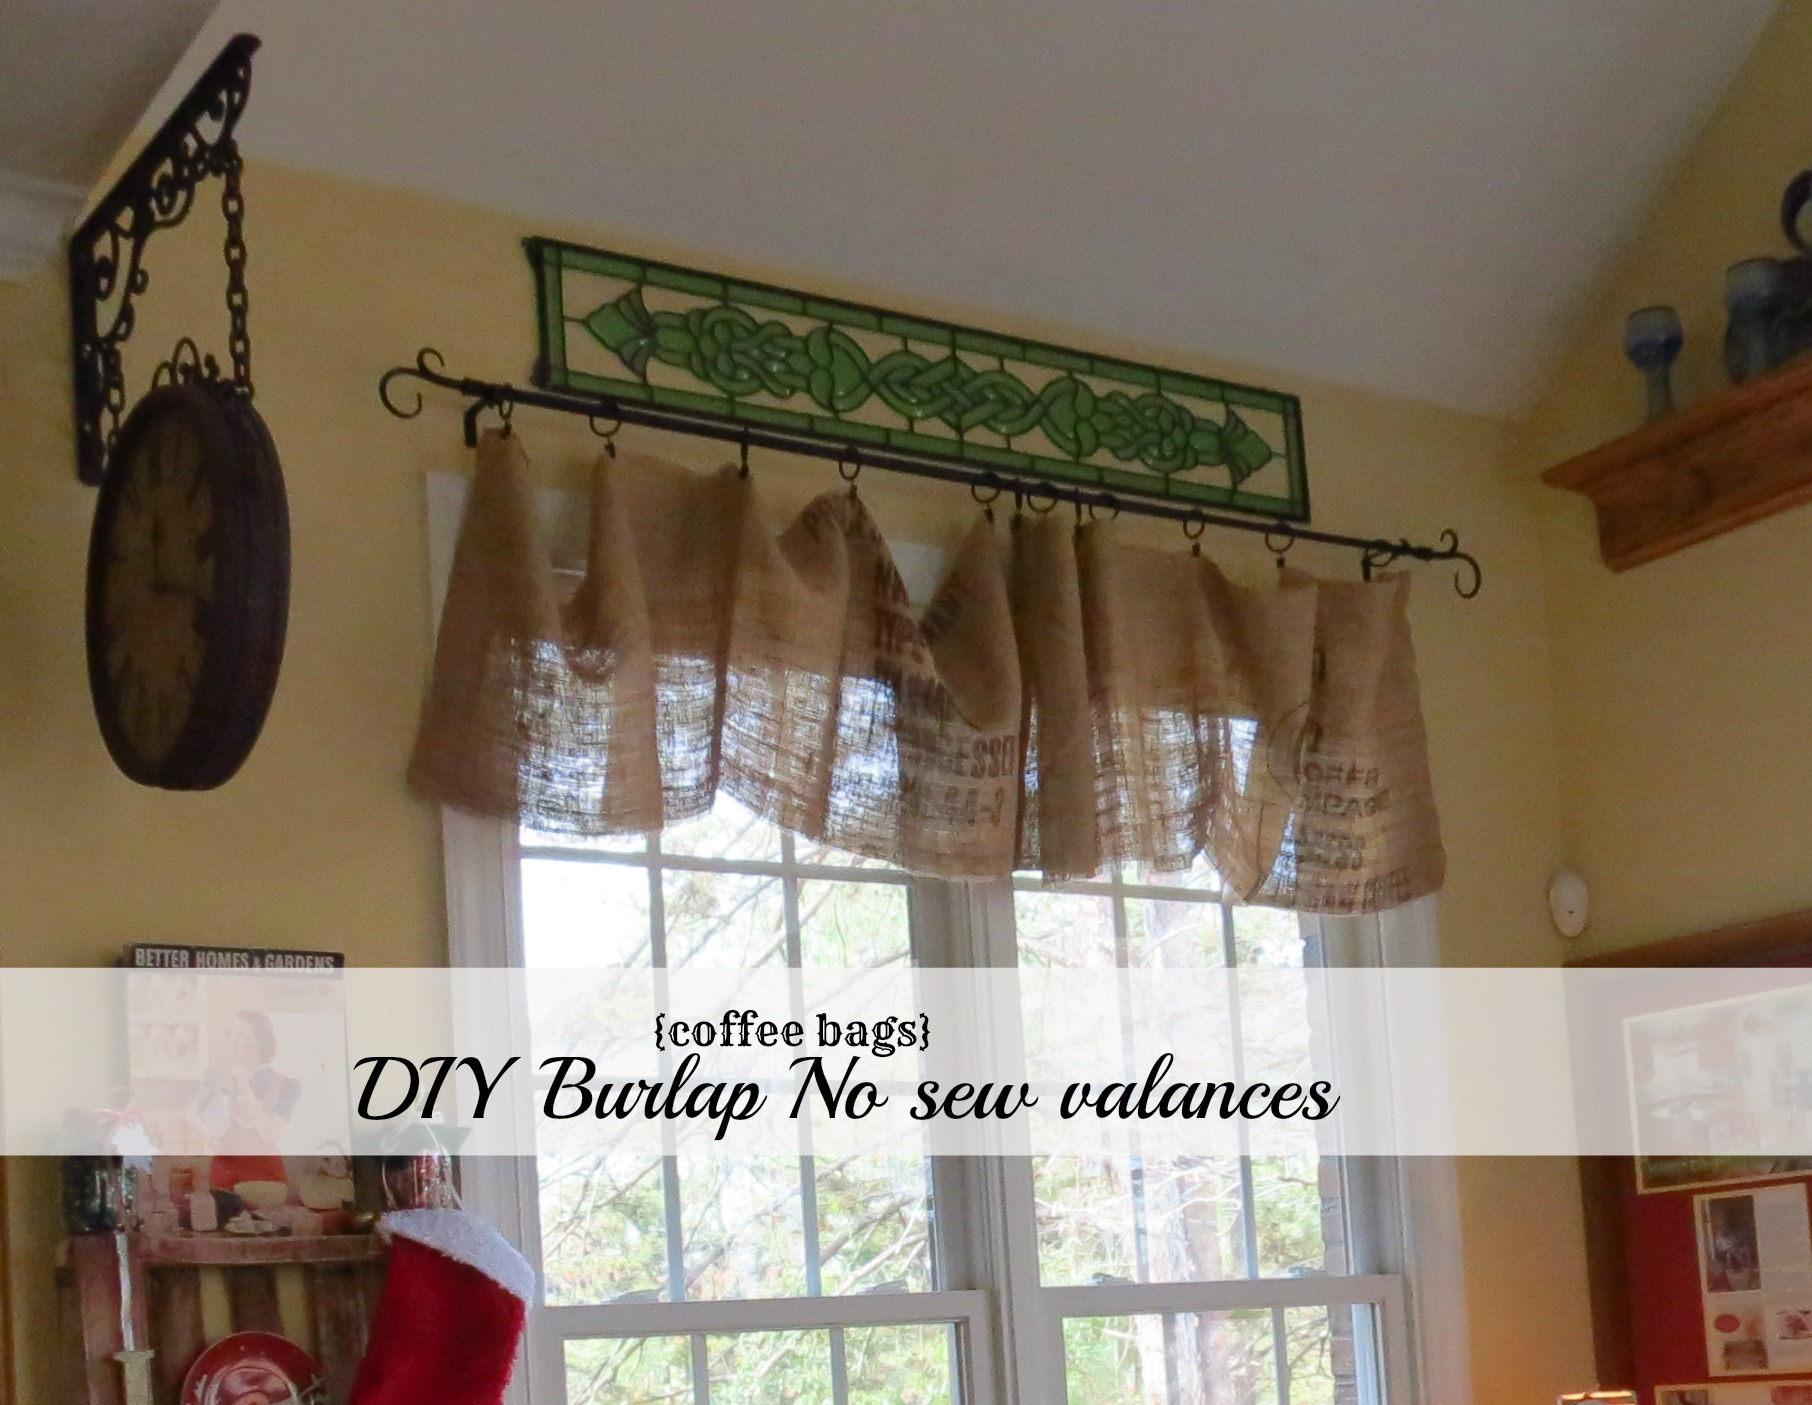 Diy no sew burlap kitchen valances made from coffee bags How to make a valance without sewing